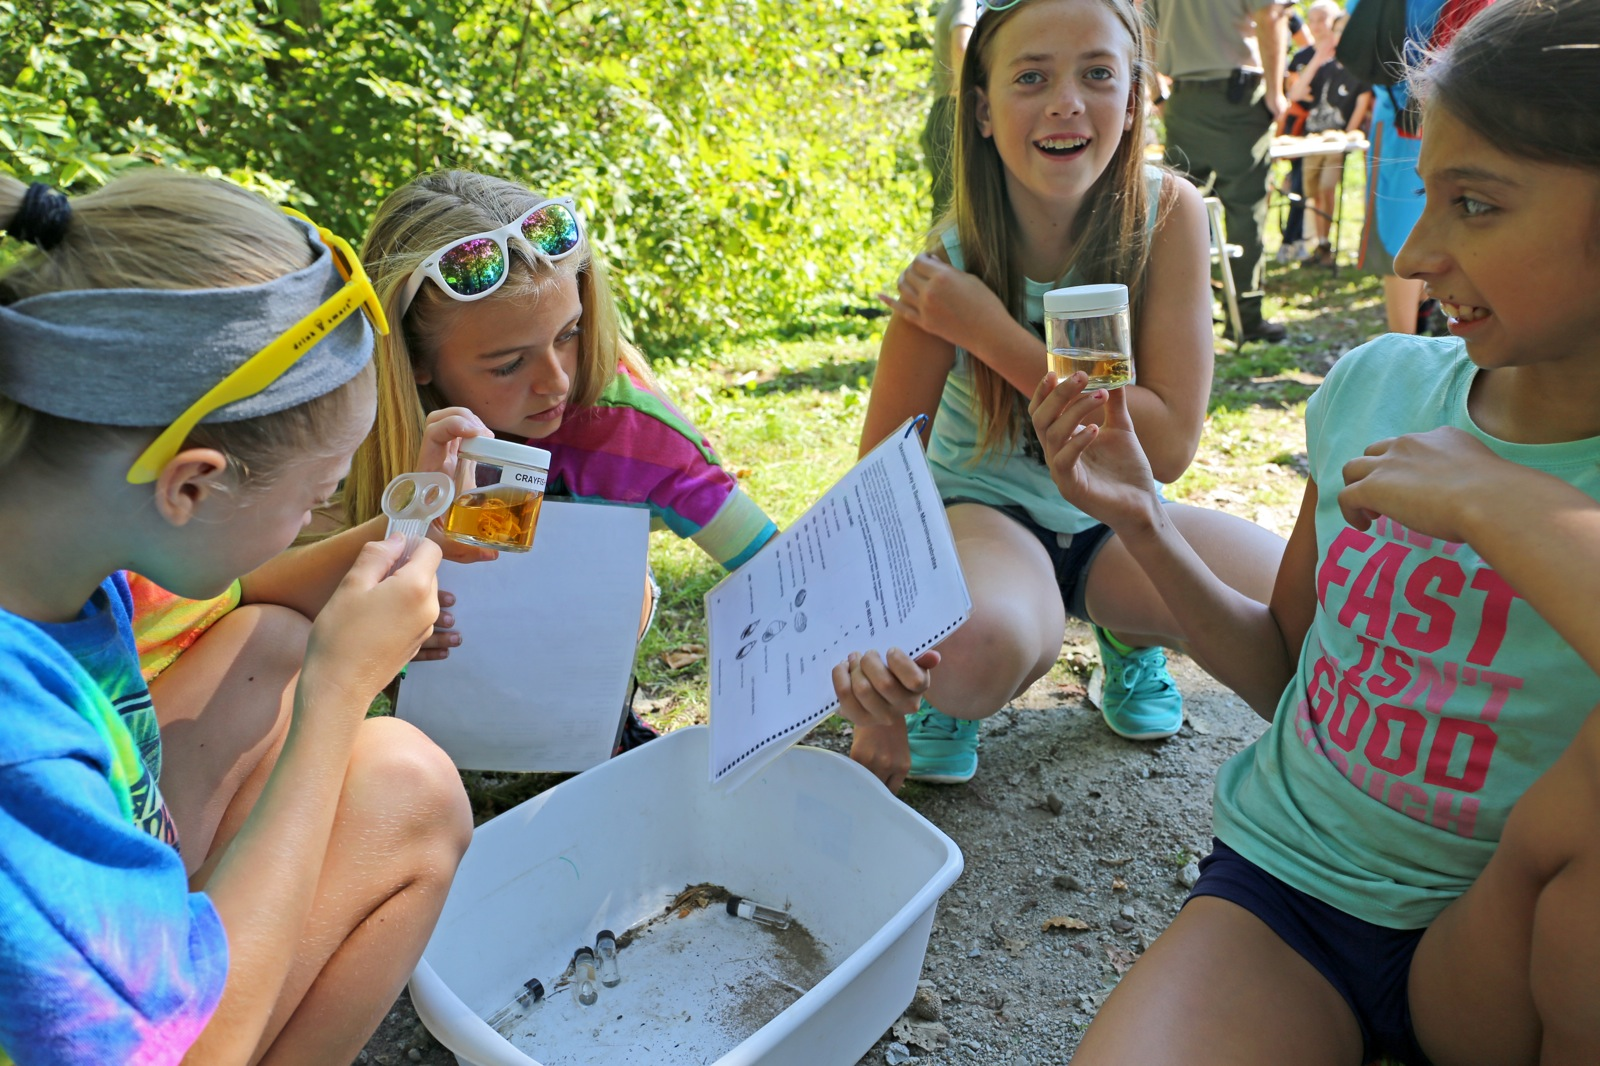 a group of 4 girls use magnify glasses to look close at jars of water